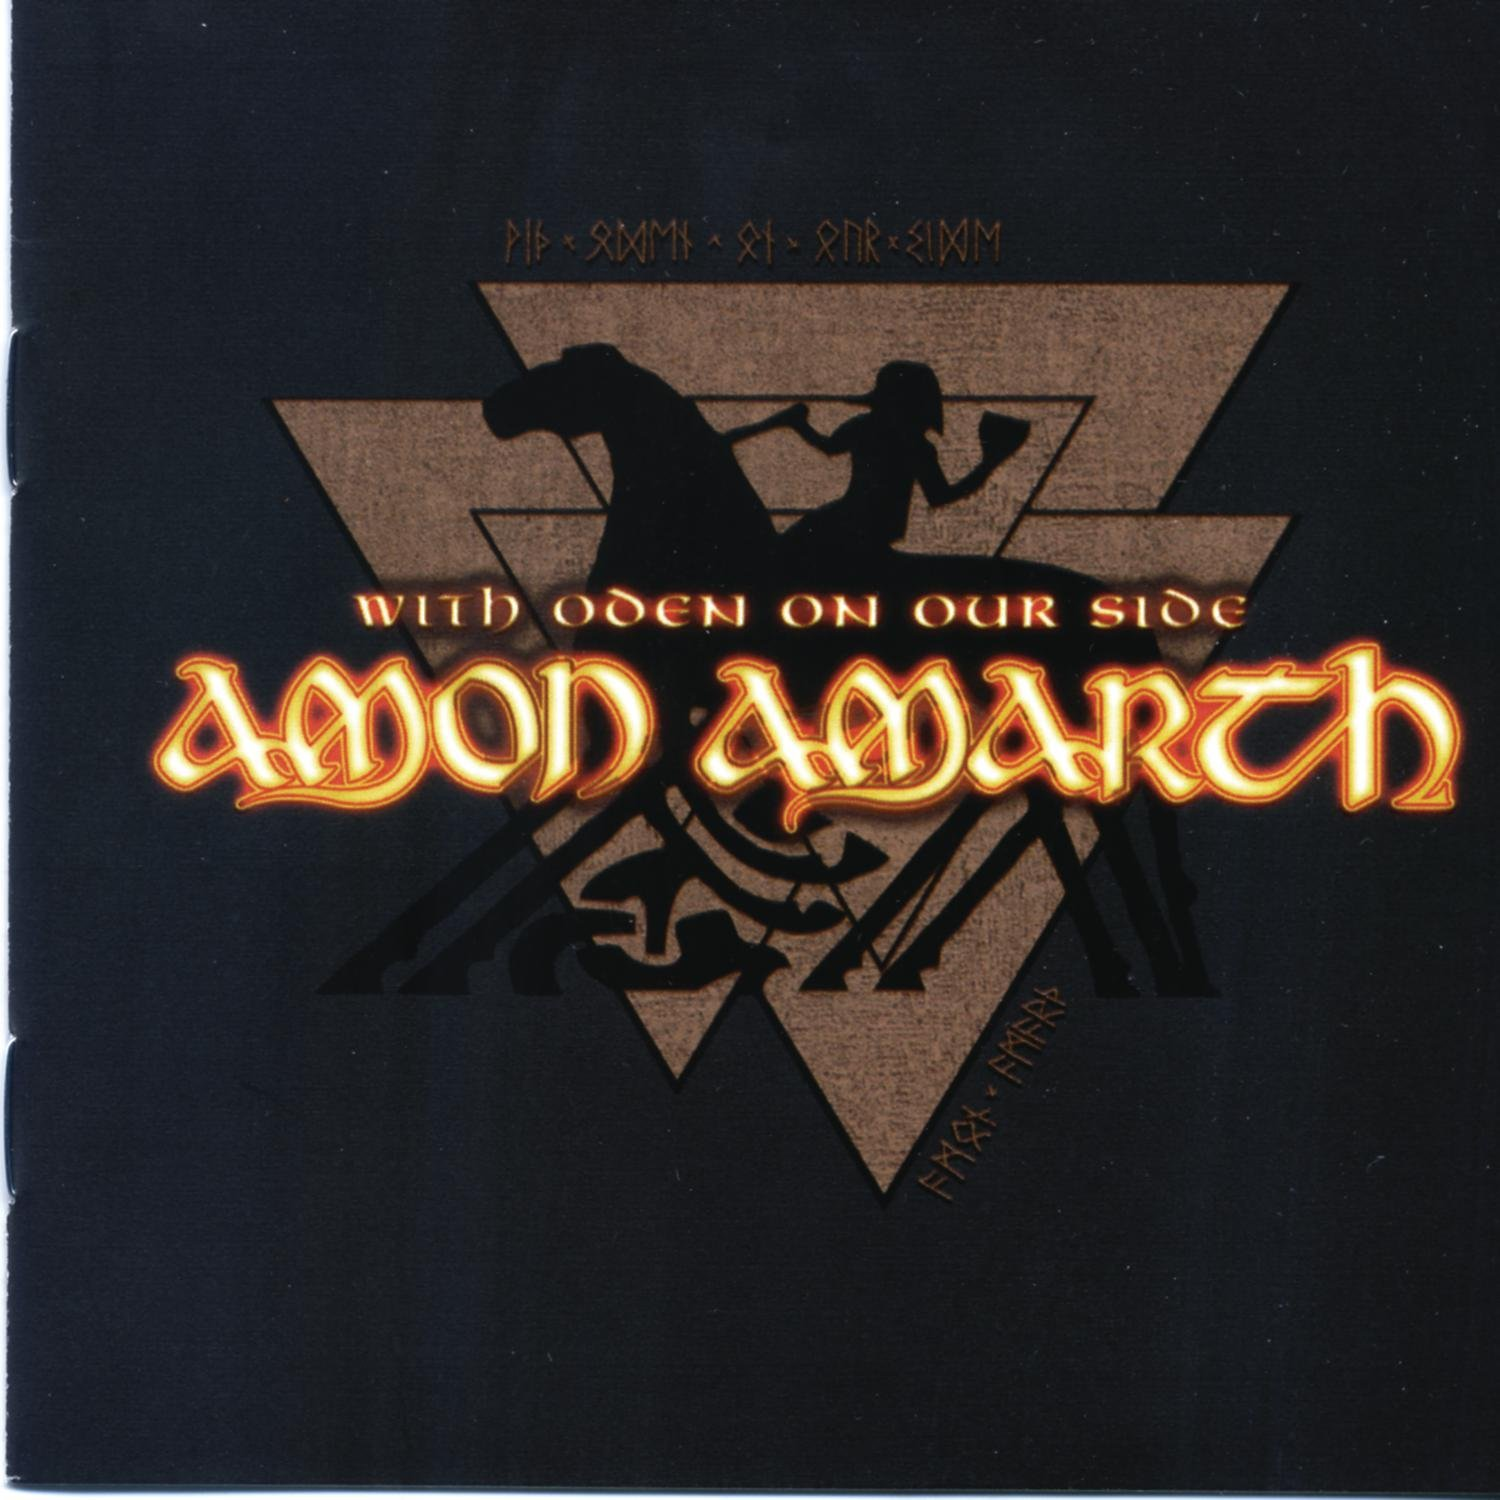 With Oden on Our Side by AMON AMARTH